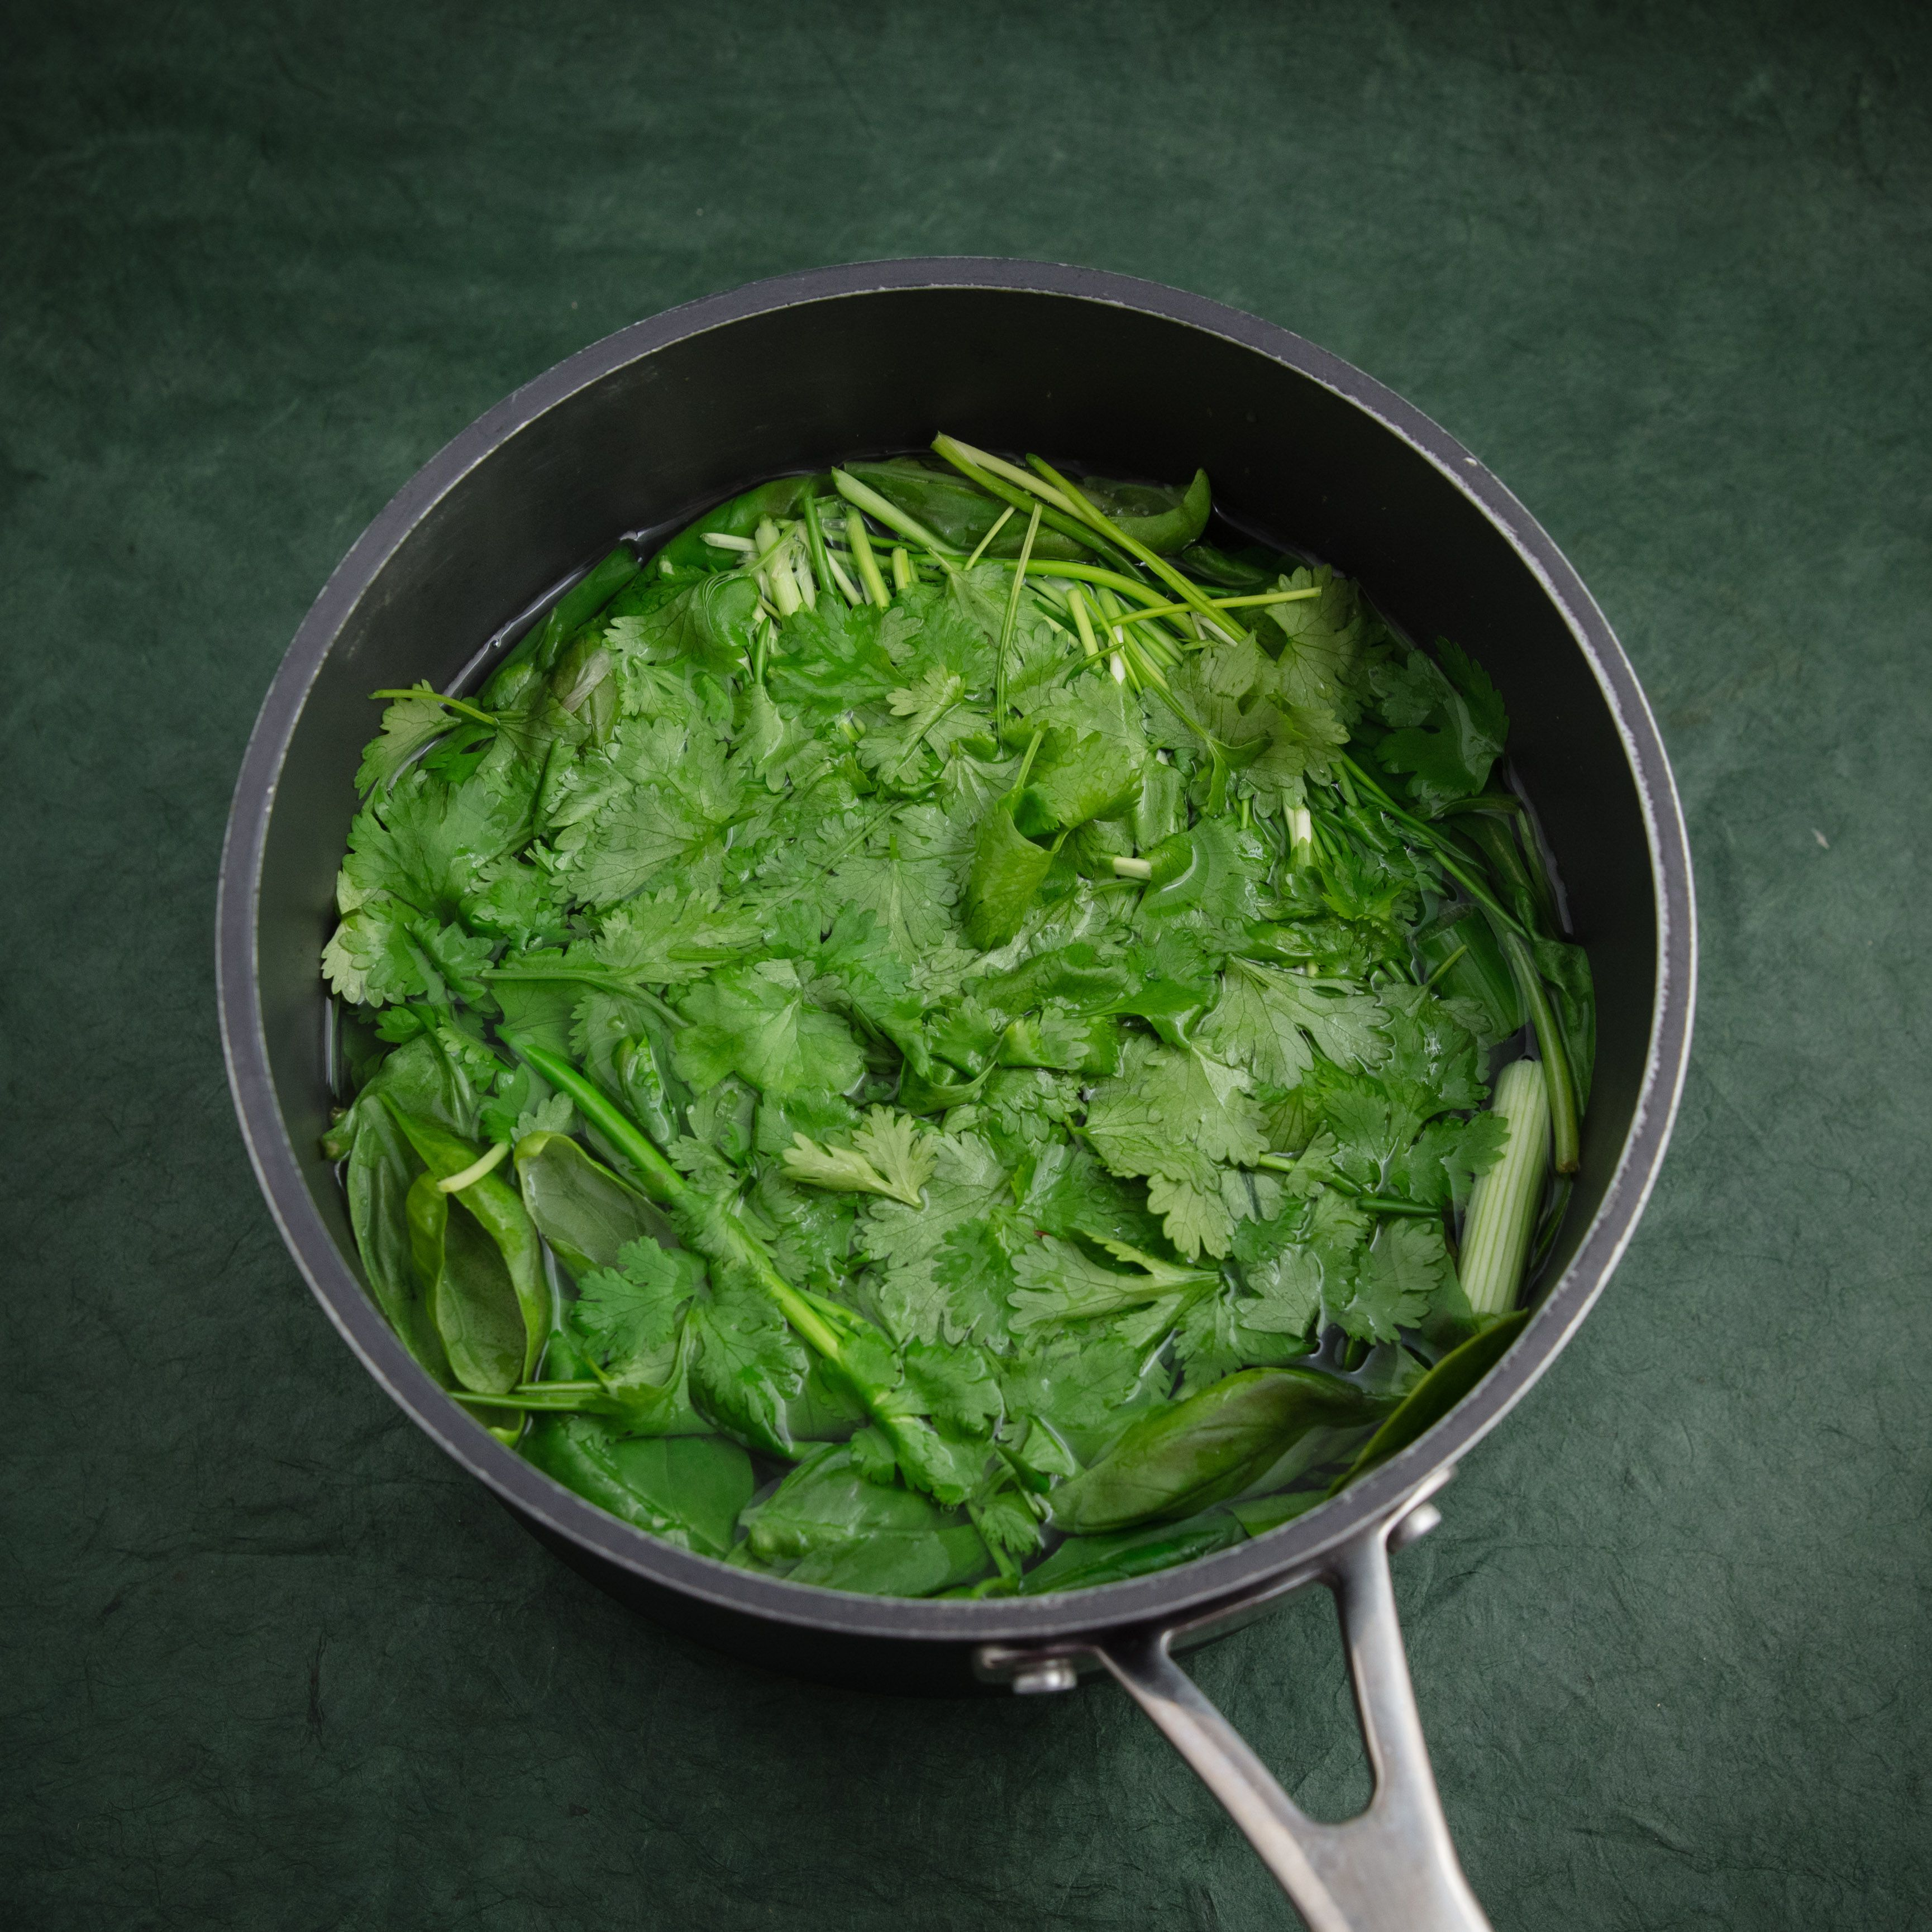 Blanching greens in boiling water.